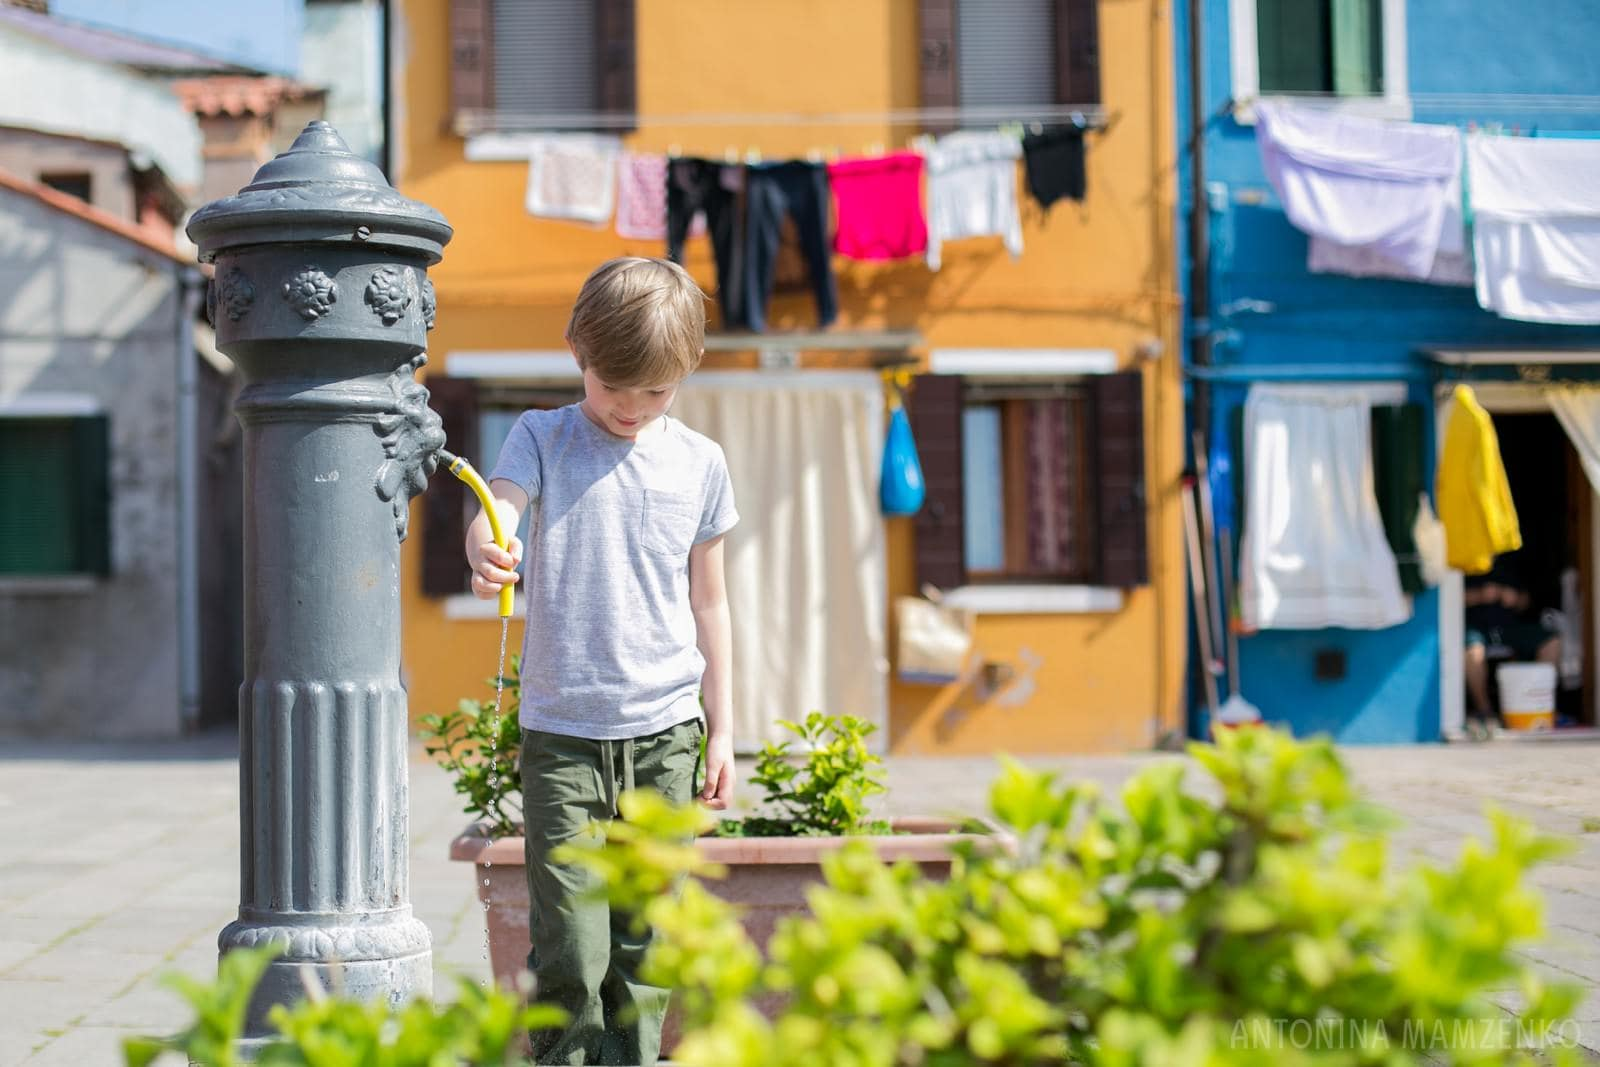 a boy drinking from water fountain in Burano, Venice, Italy